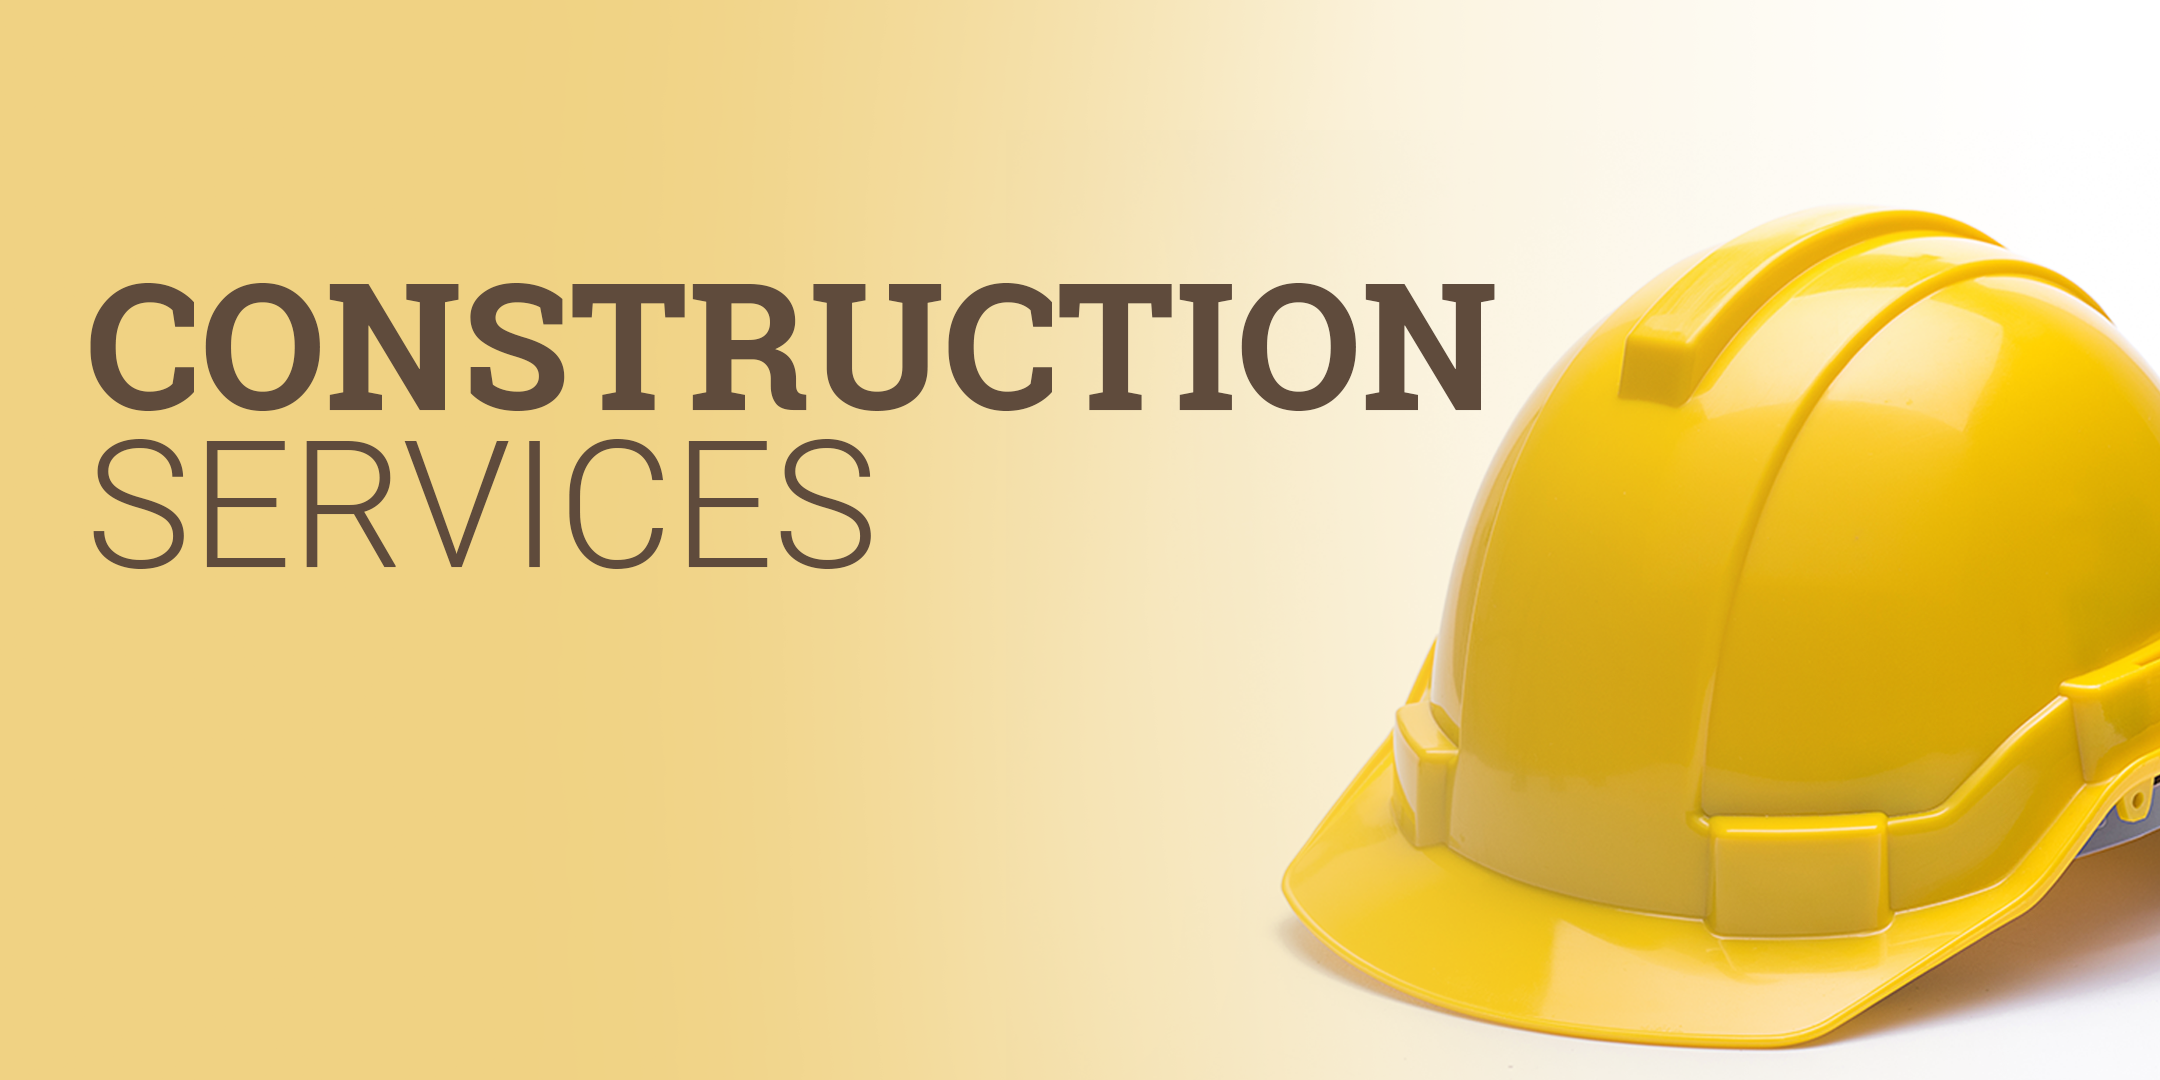 Financial ratios and KPIs for your construction company